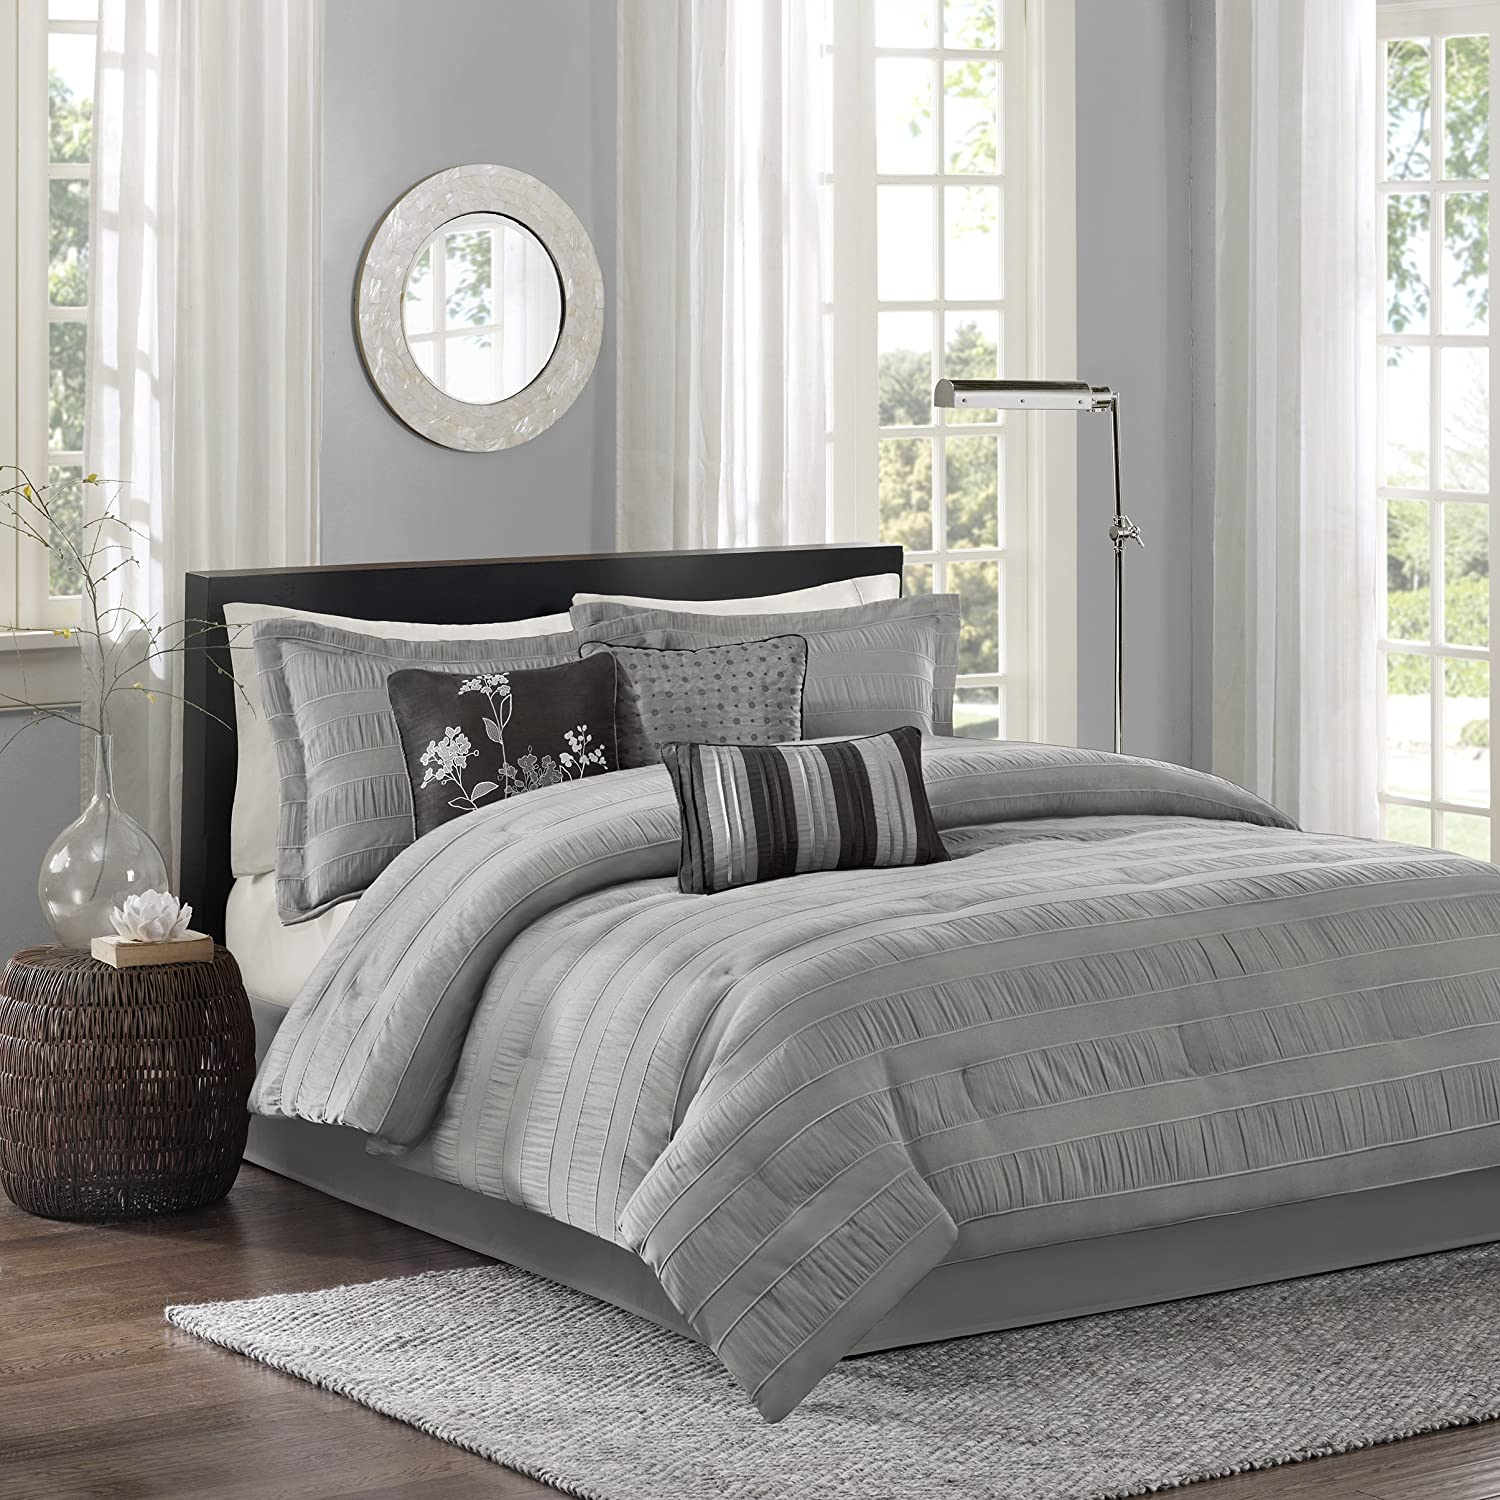 Madison Park Hampton 7 Piece Comforter Set, Queen, Grey MP10-1020